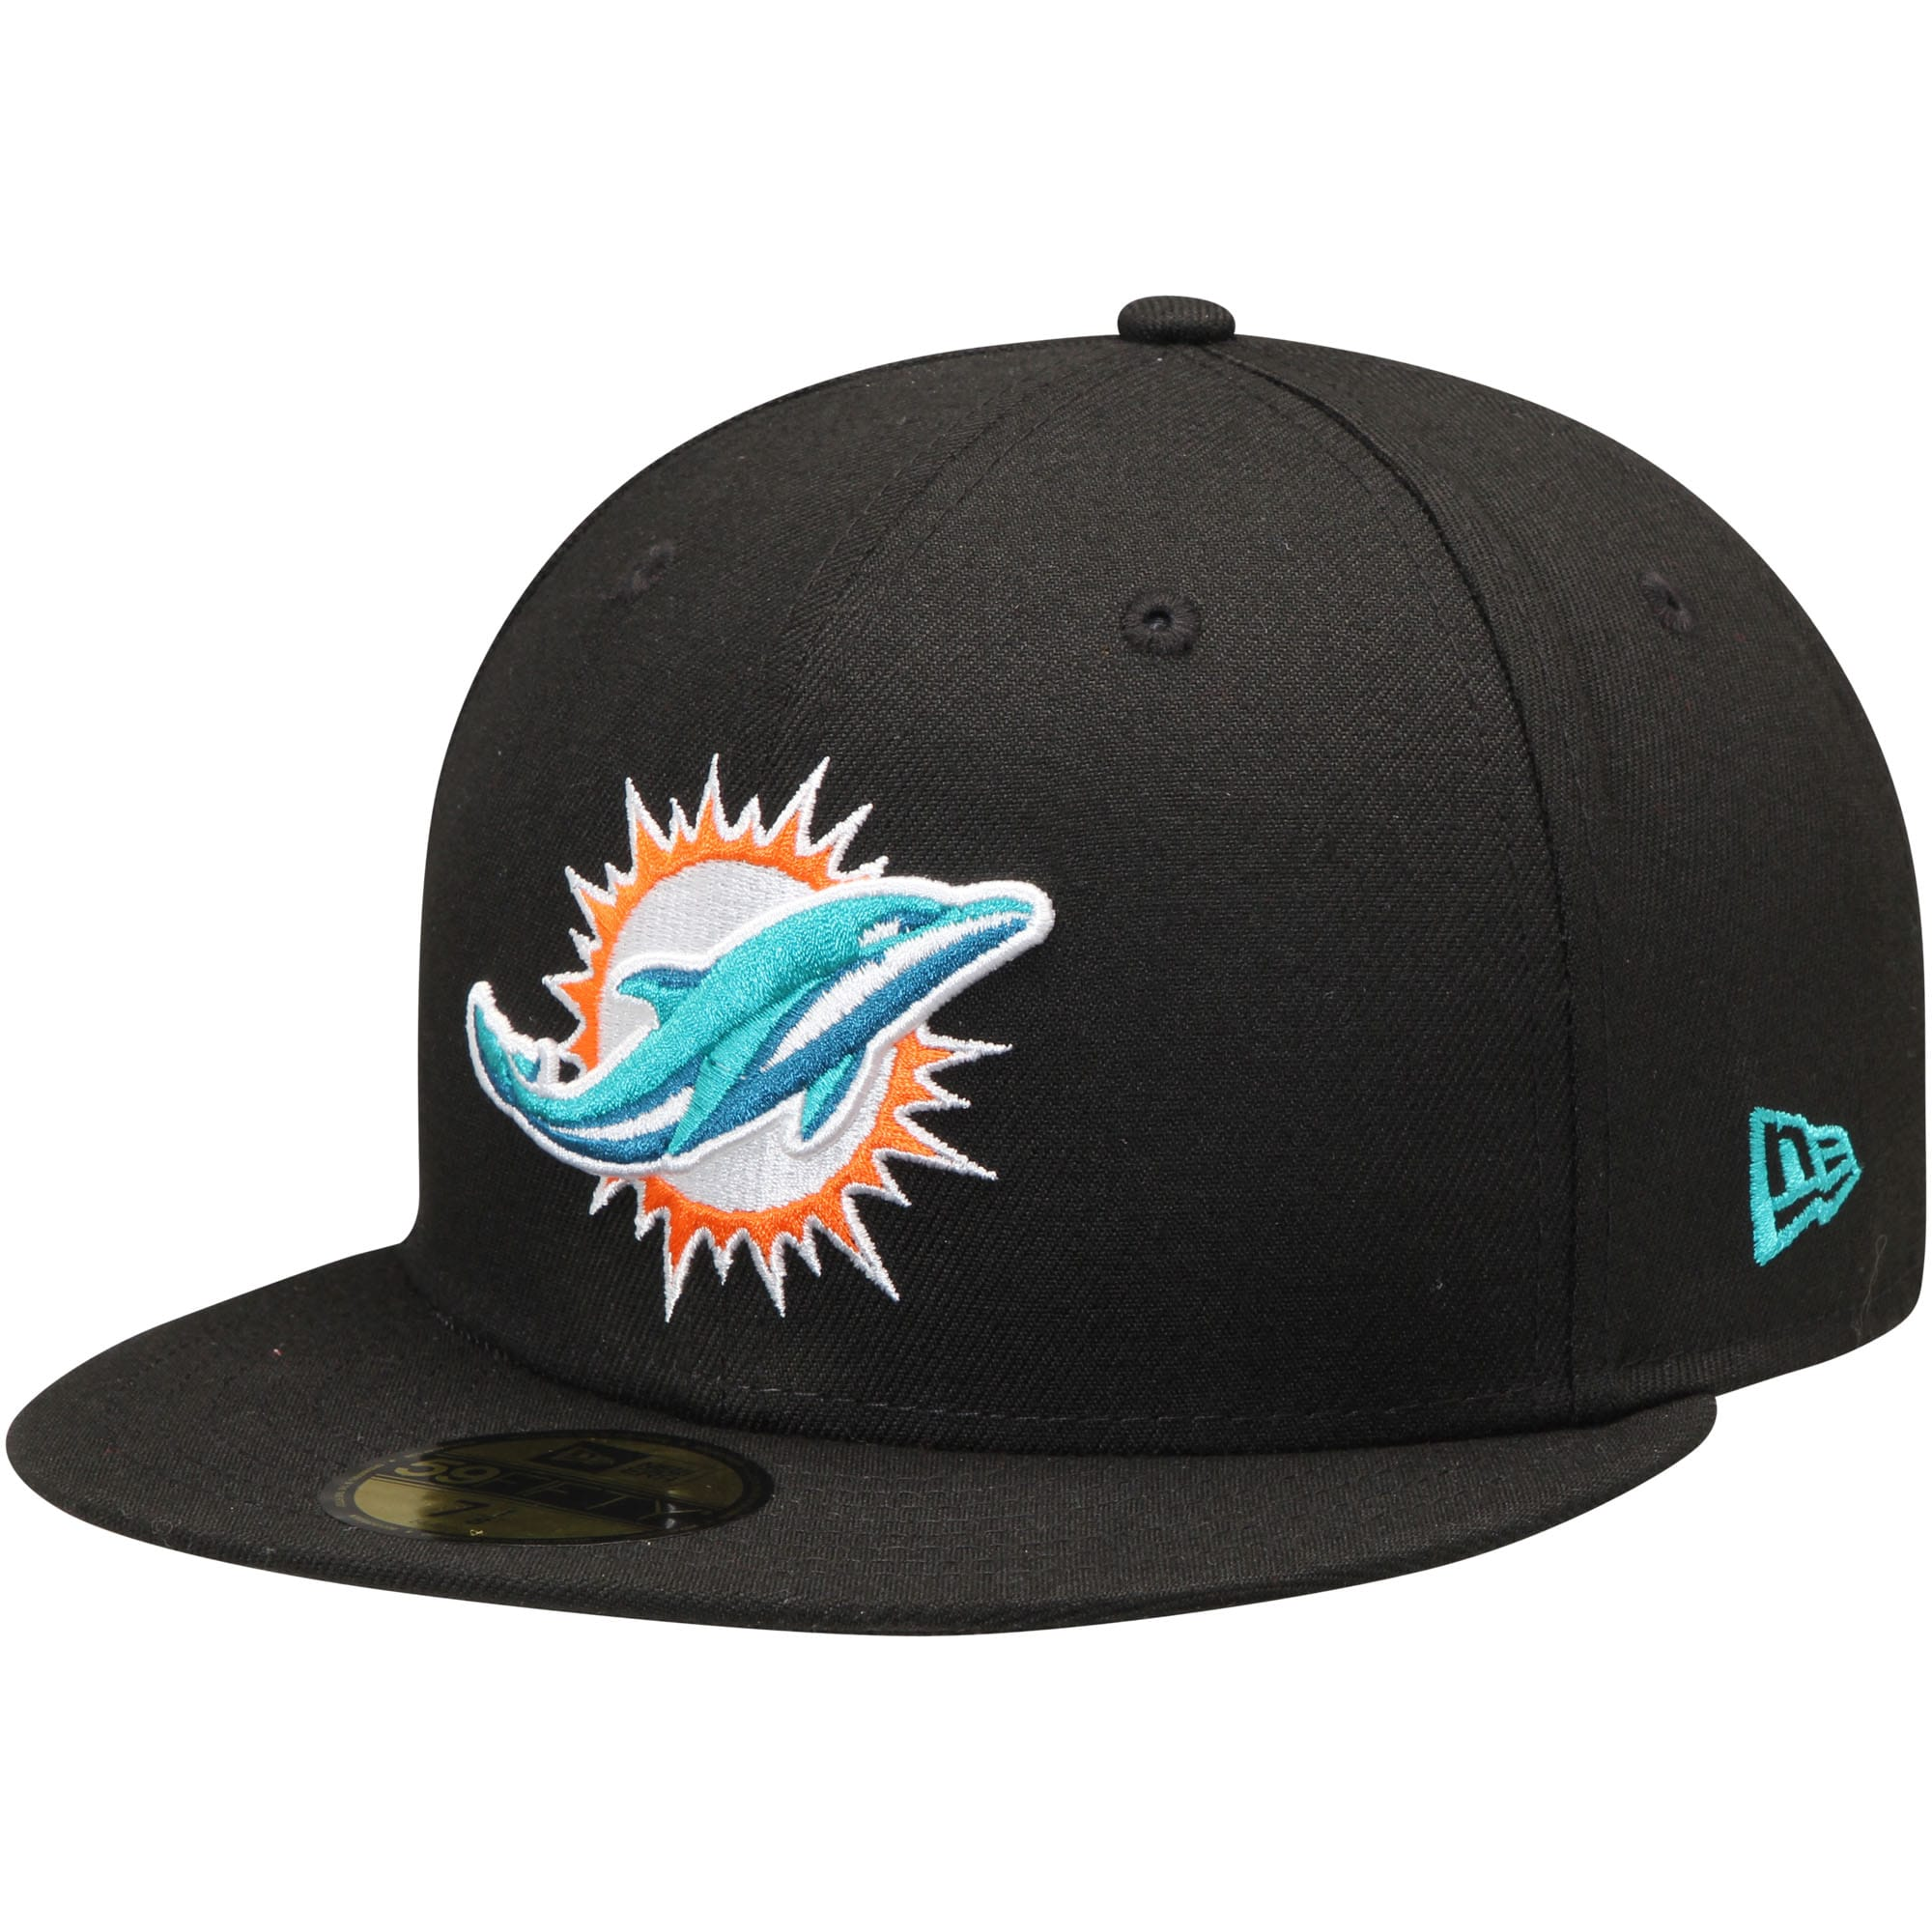 Miami Dolphins New Era Primary Logo 59FIFTY Fitted Hat - Black